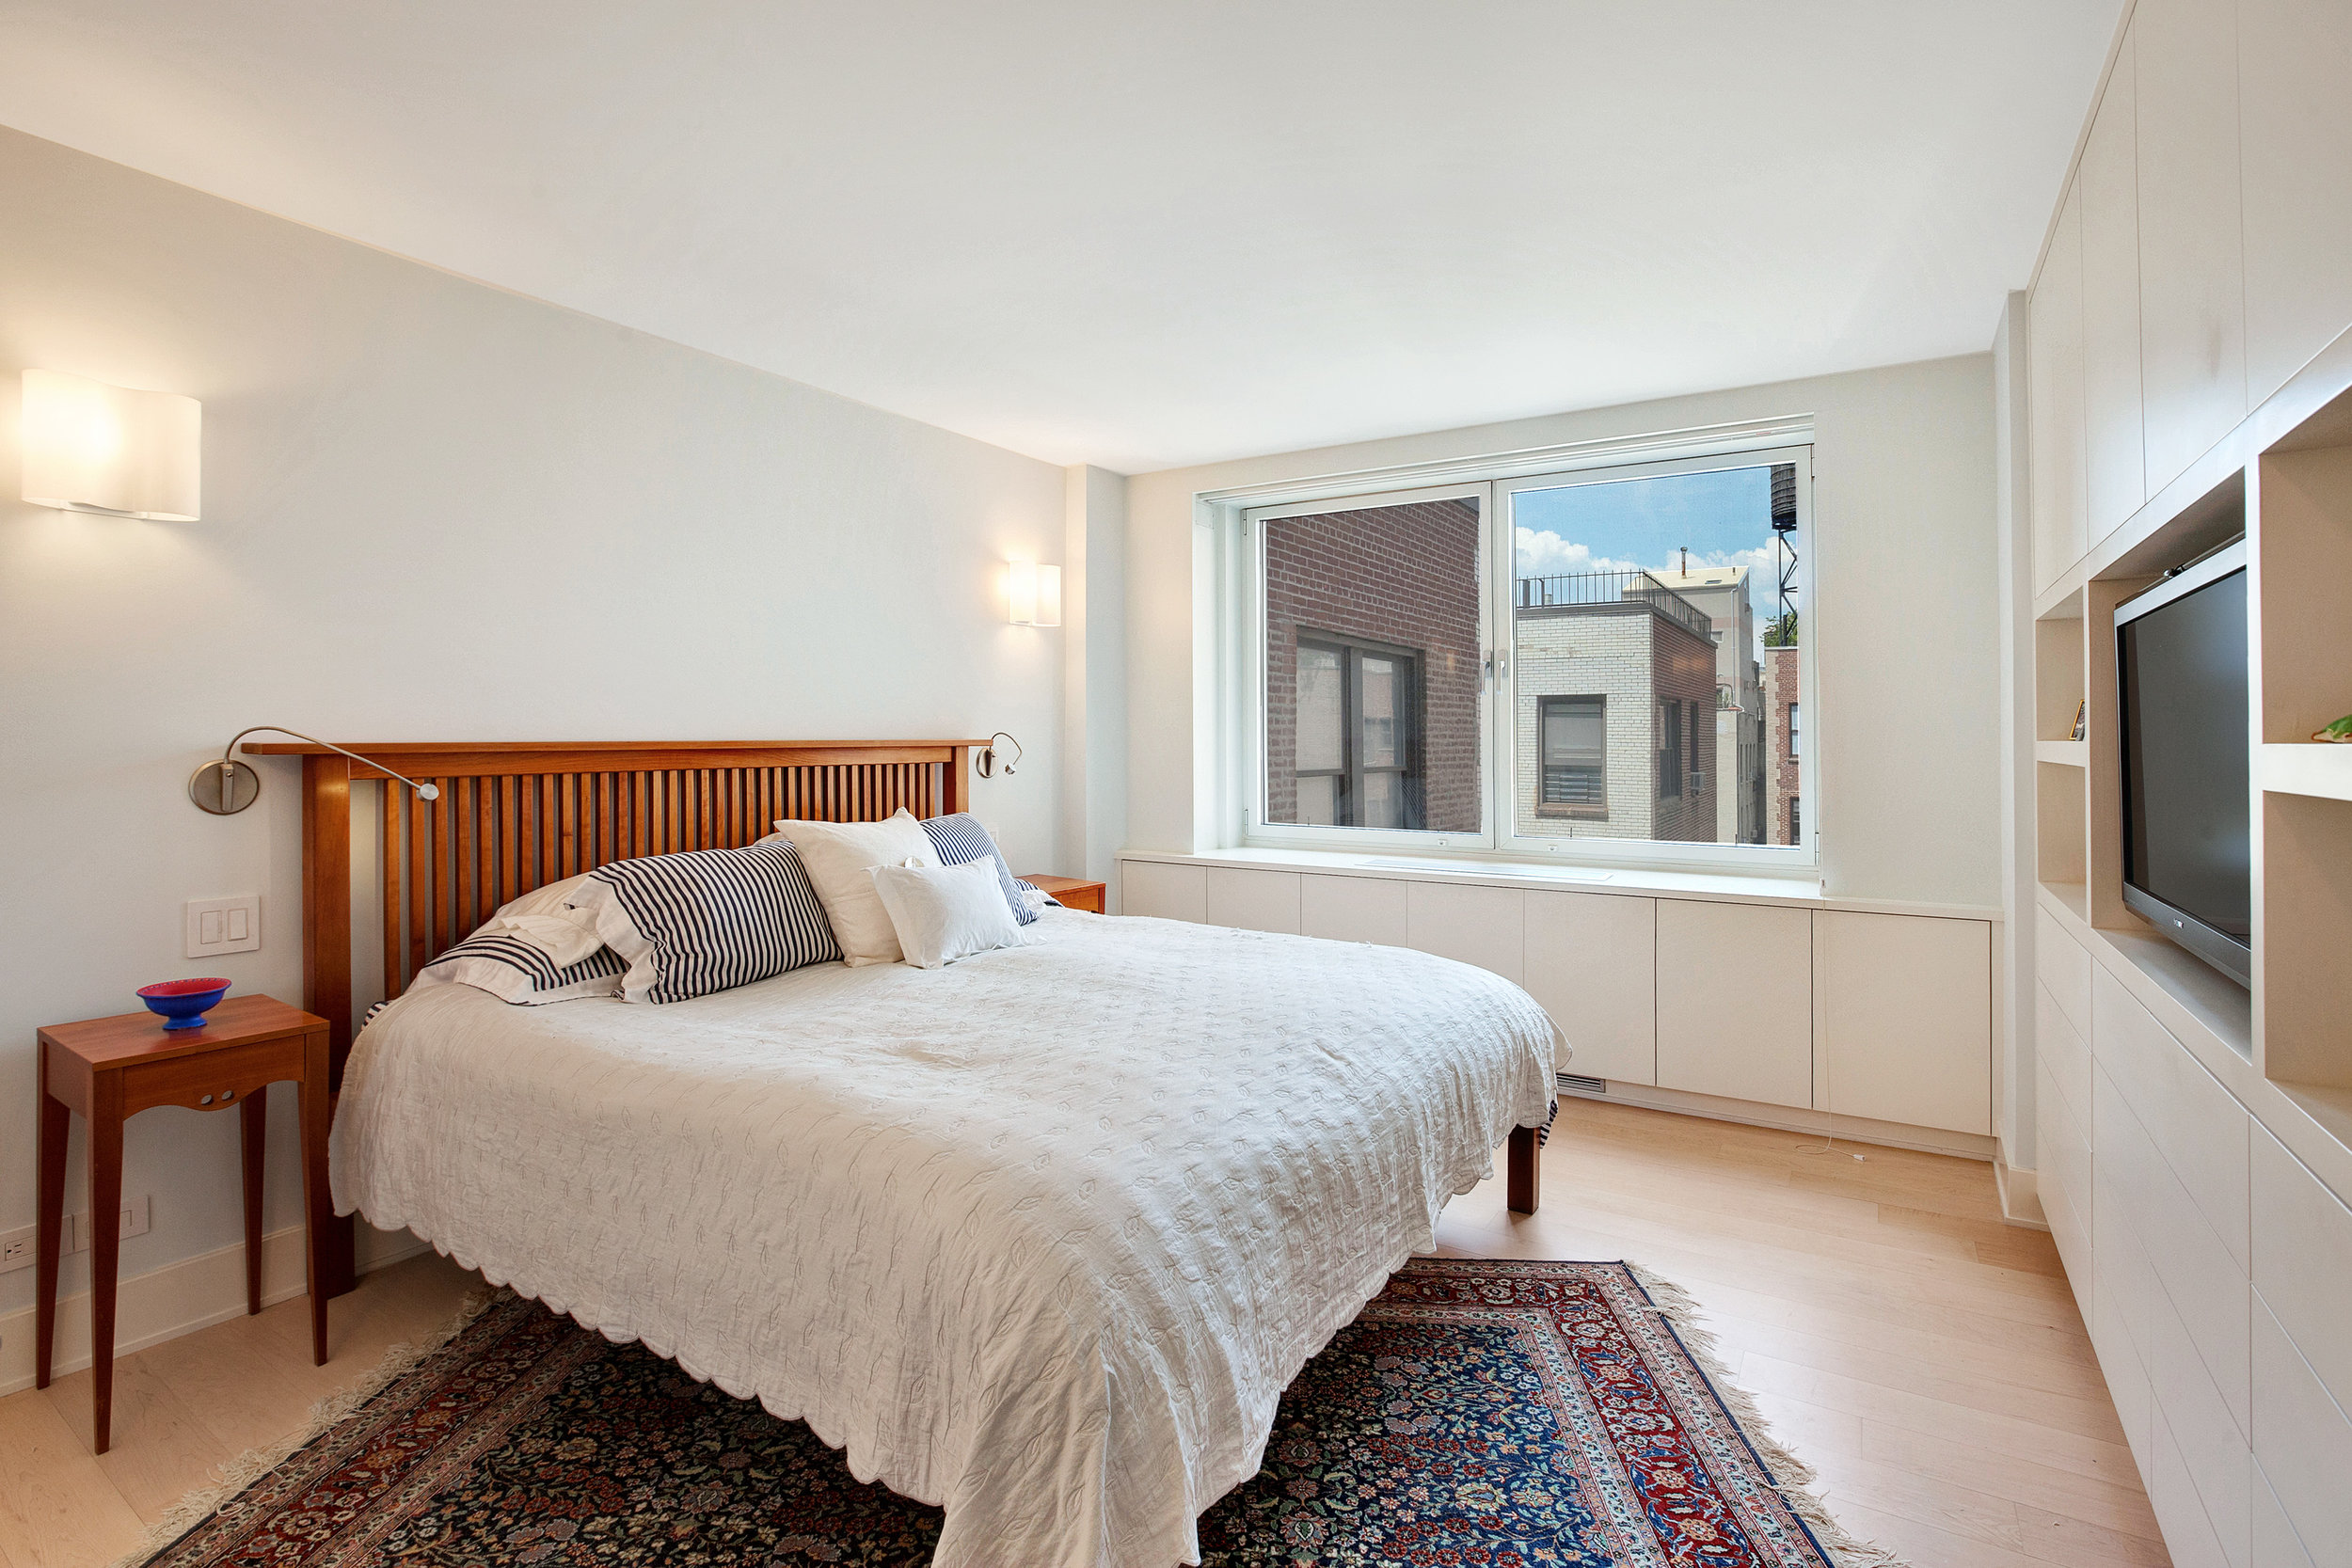 250West90thStreet17K_Dylan_Hildreth-Hoffman_DouglasElliman_Photography_28828870_high_res.jpg